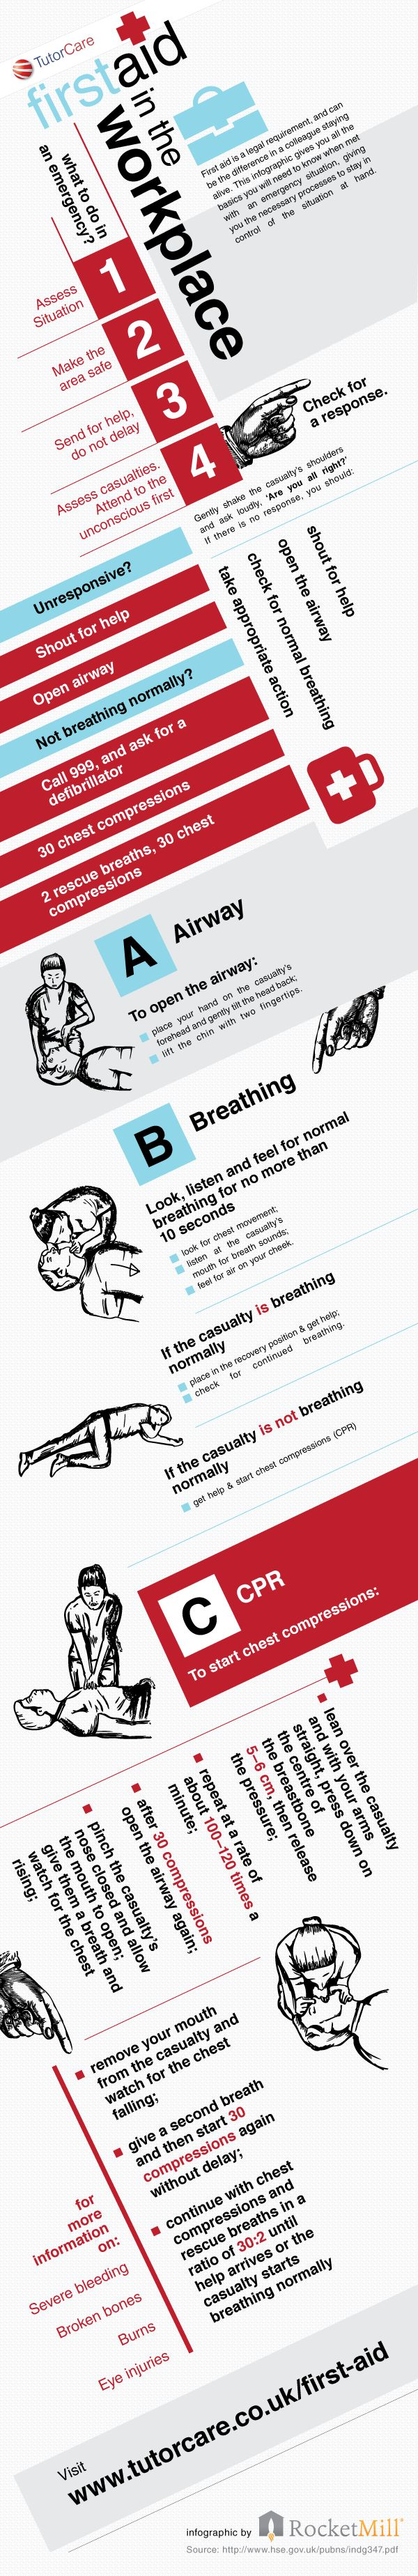 First Aid: What to do in an Emergency at Work